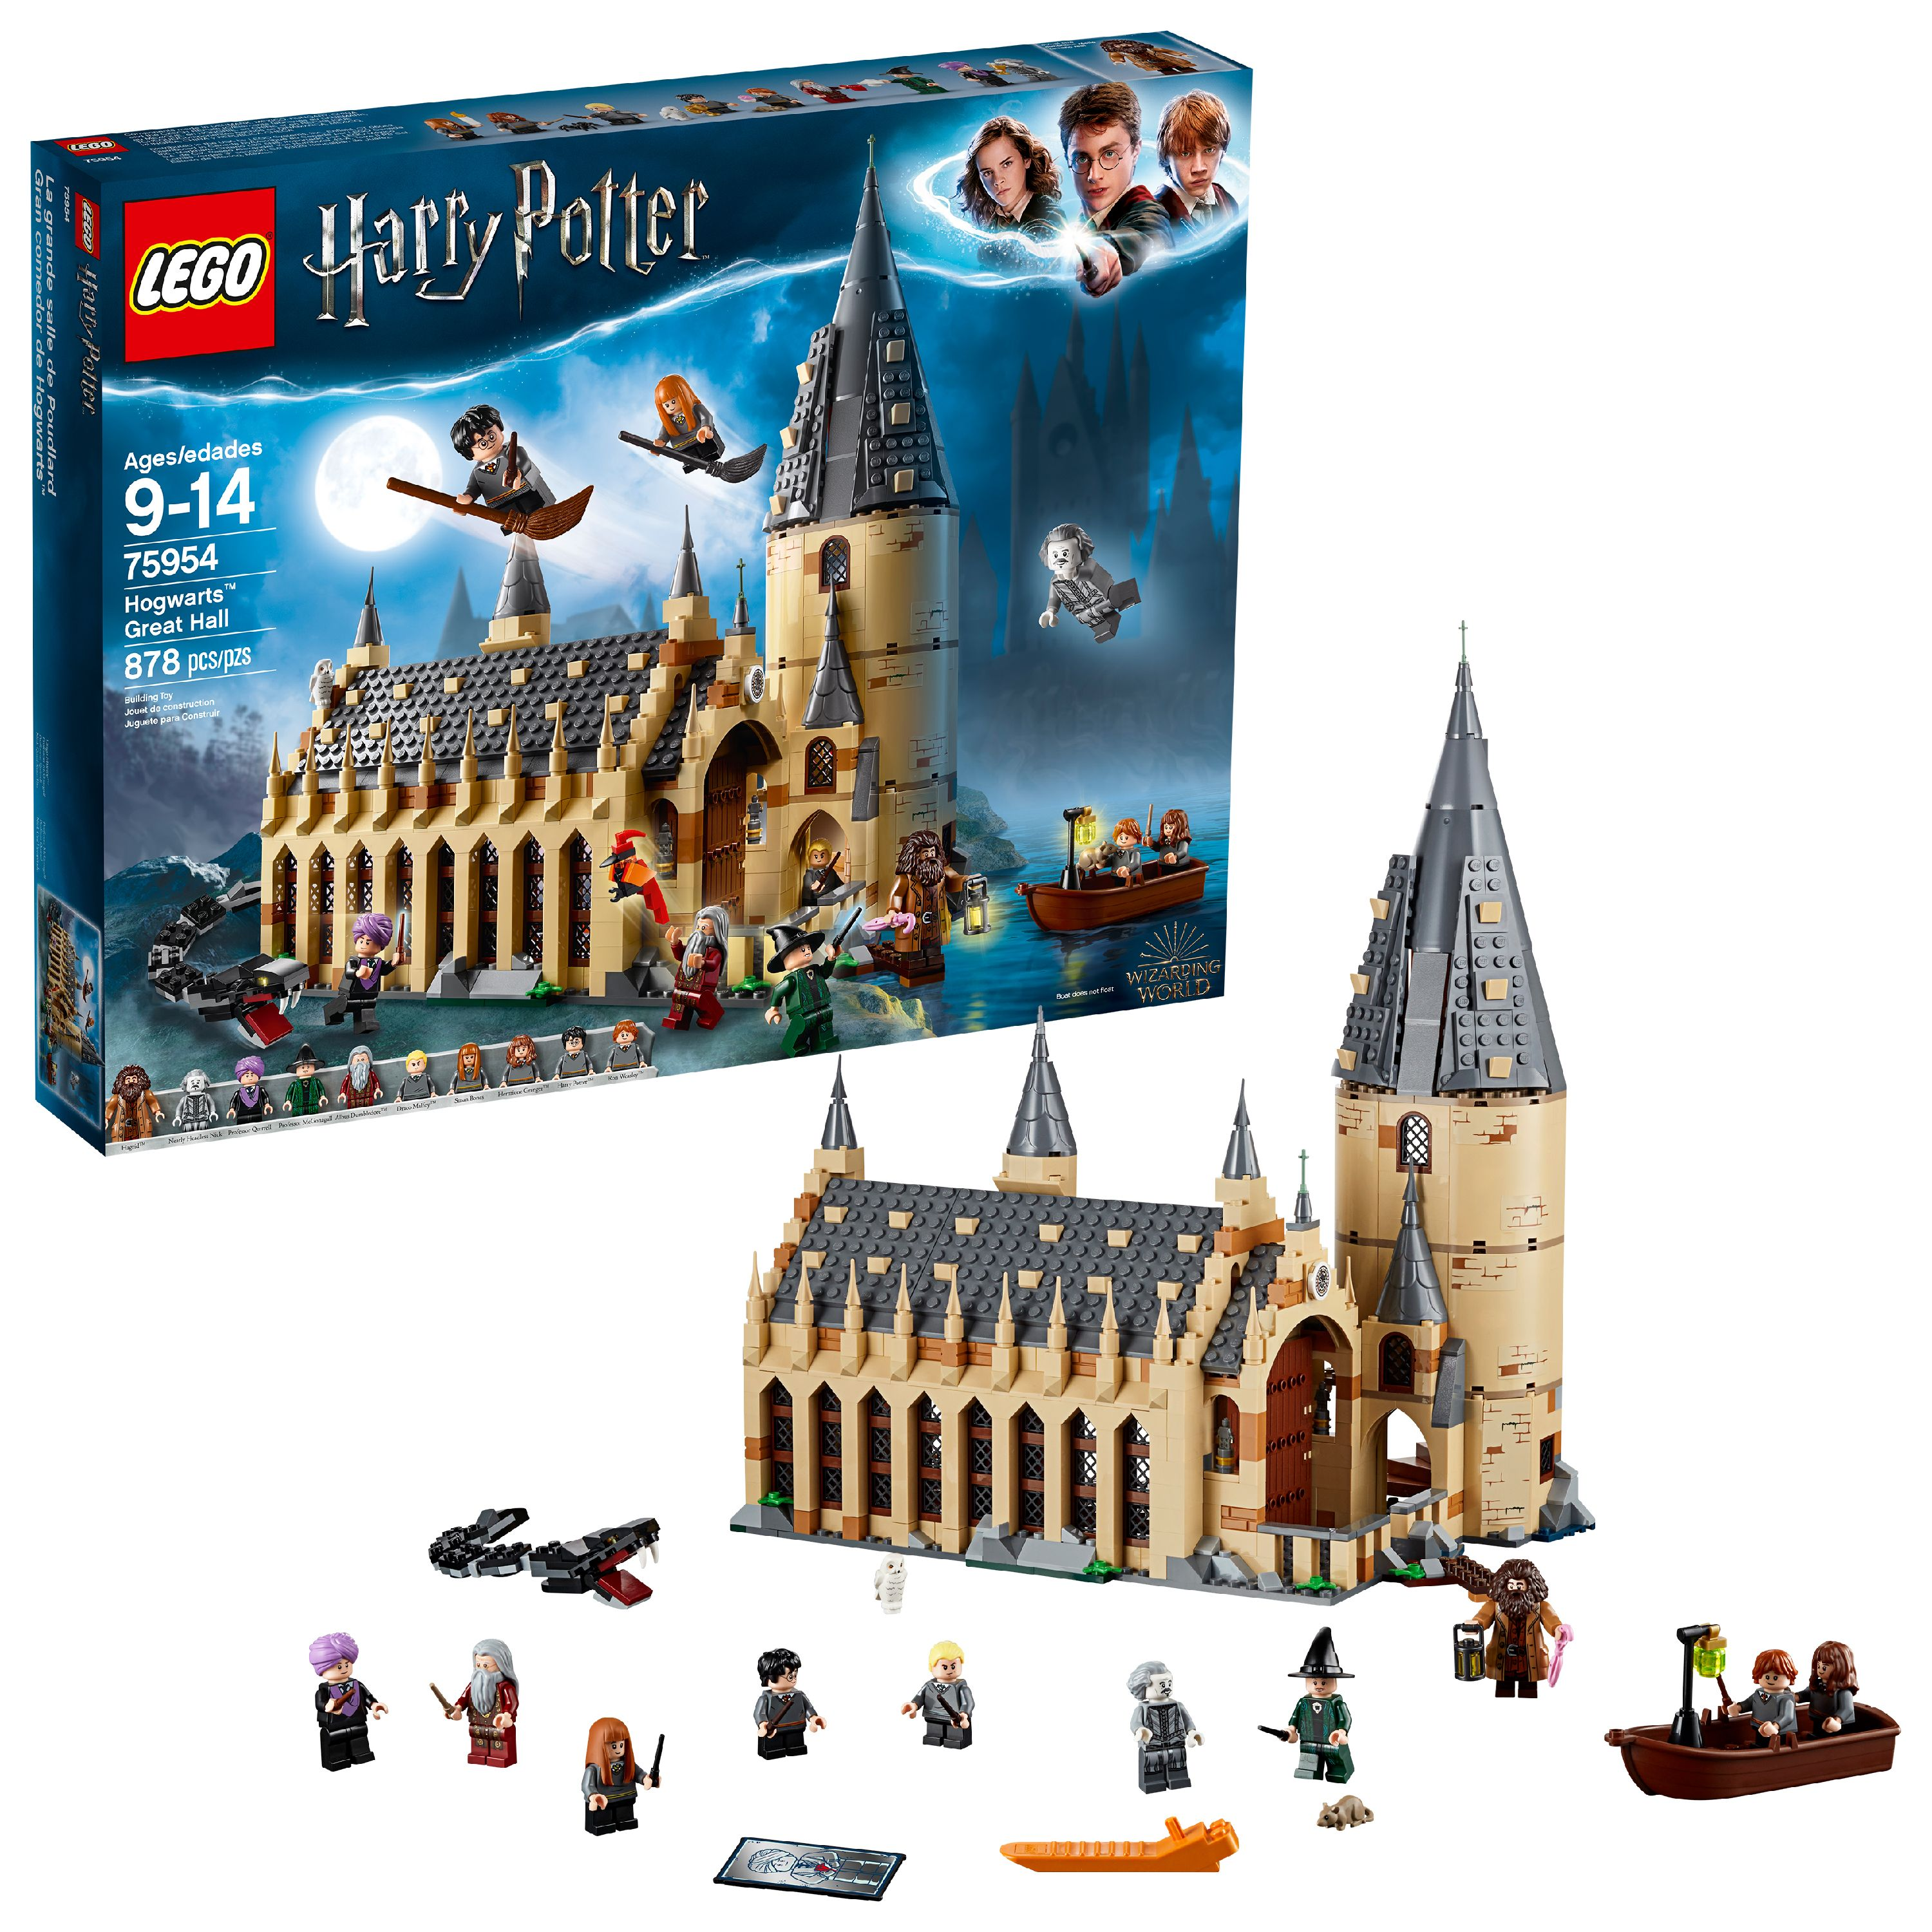 LEGO Harry Potter TM Hogwart Great Hall 75954 Toy of the Year 2019